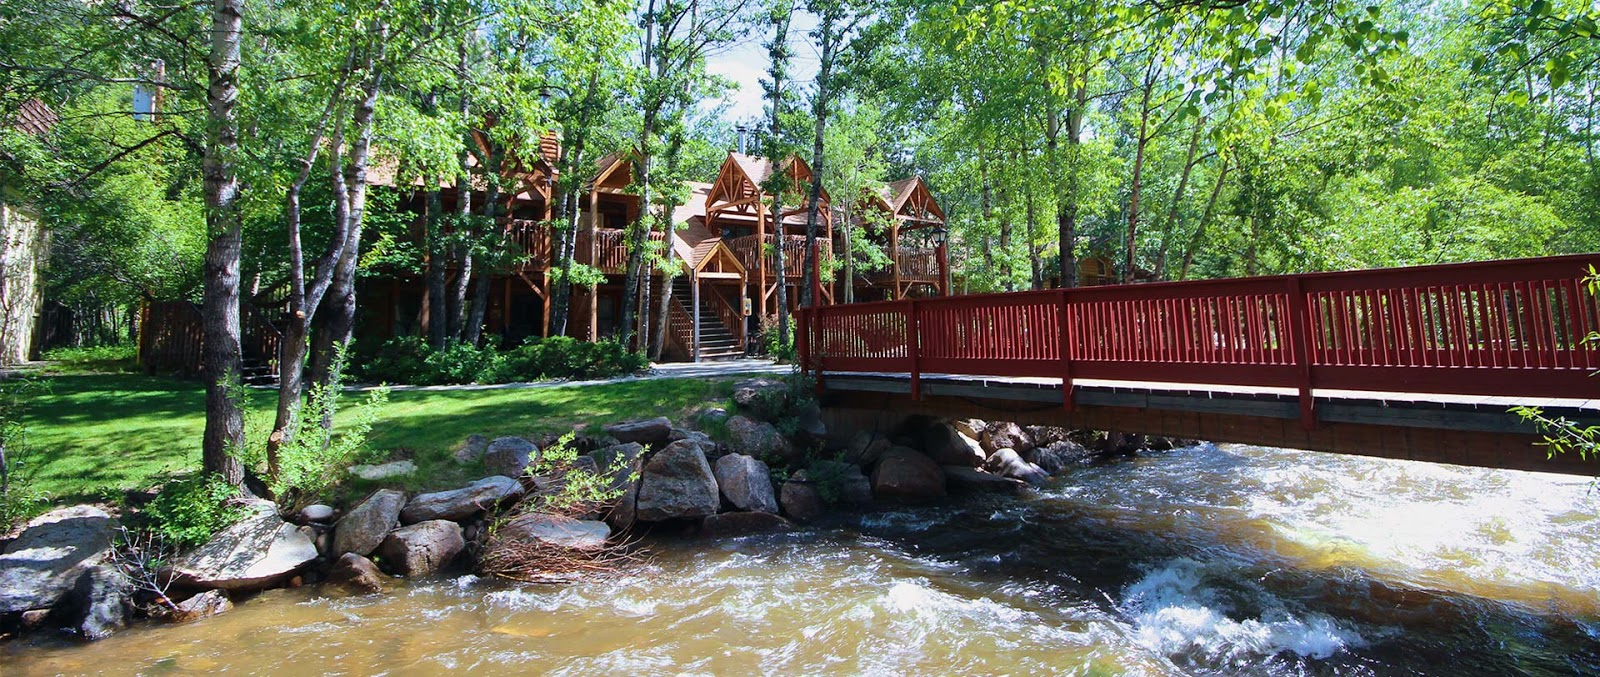 Streamside Located On Fall River It S Just One Mile West Of The Downtown Area A Town Or Estes Park And Three Miles From